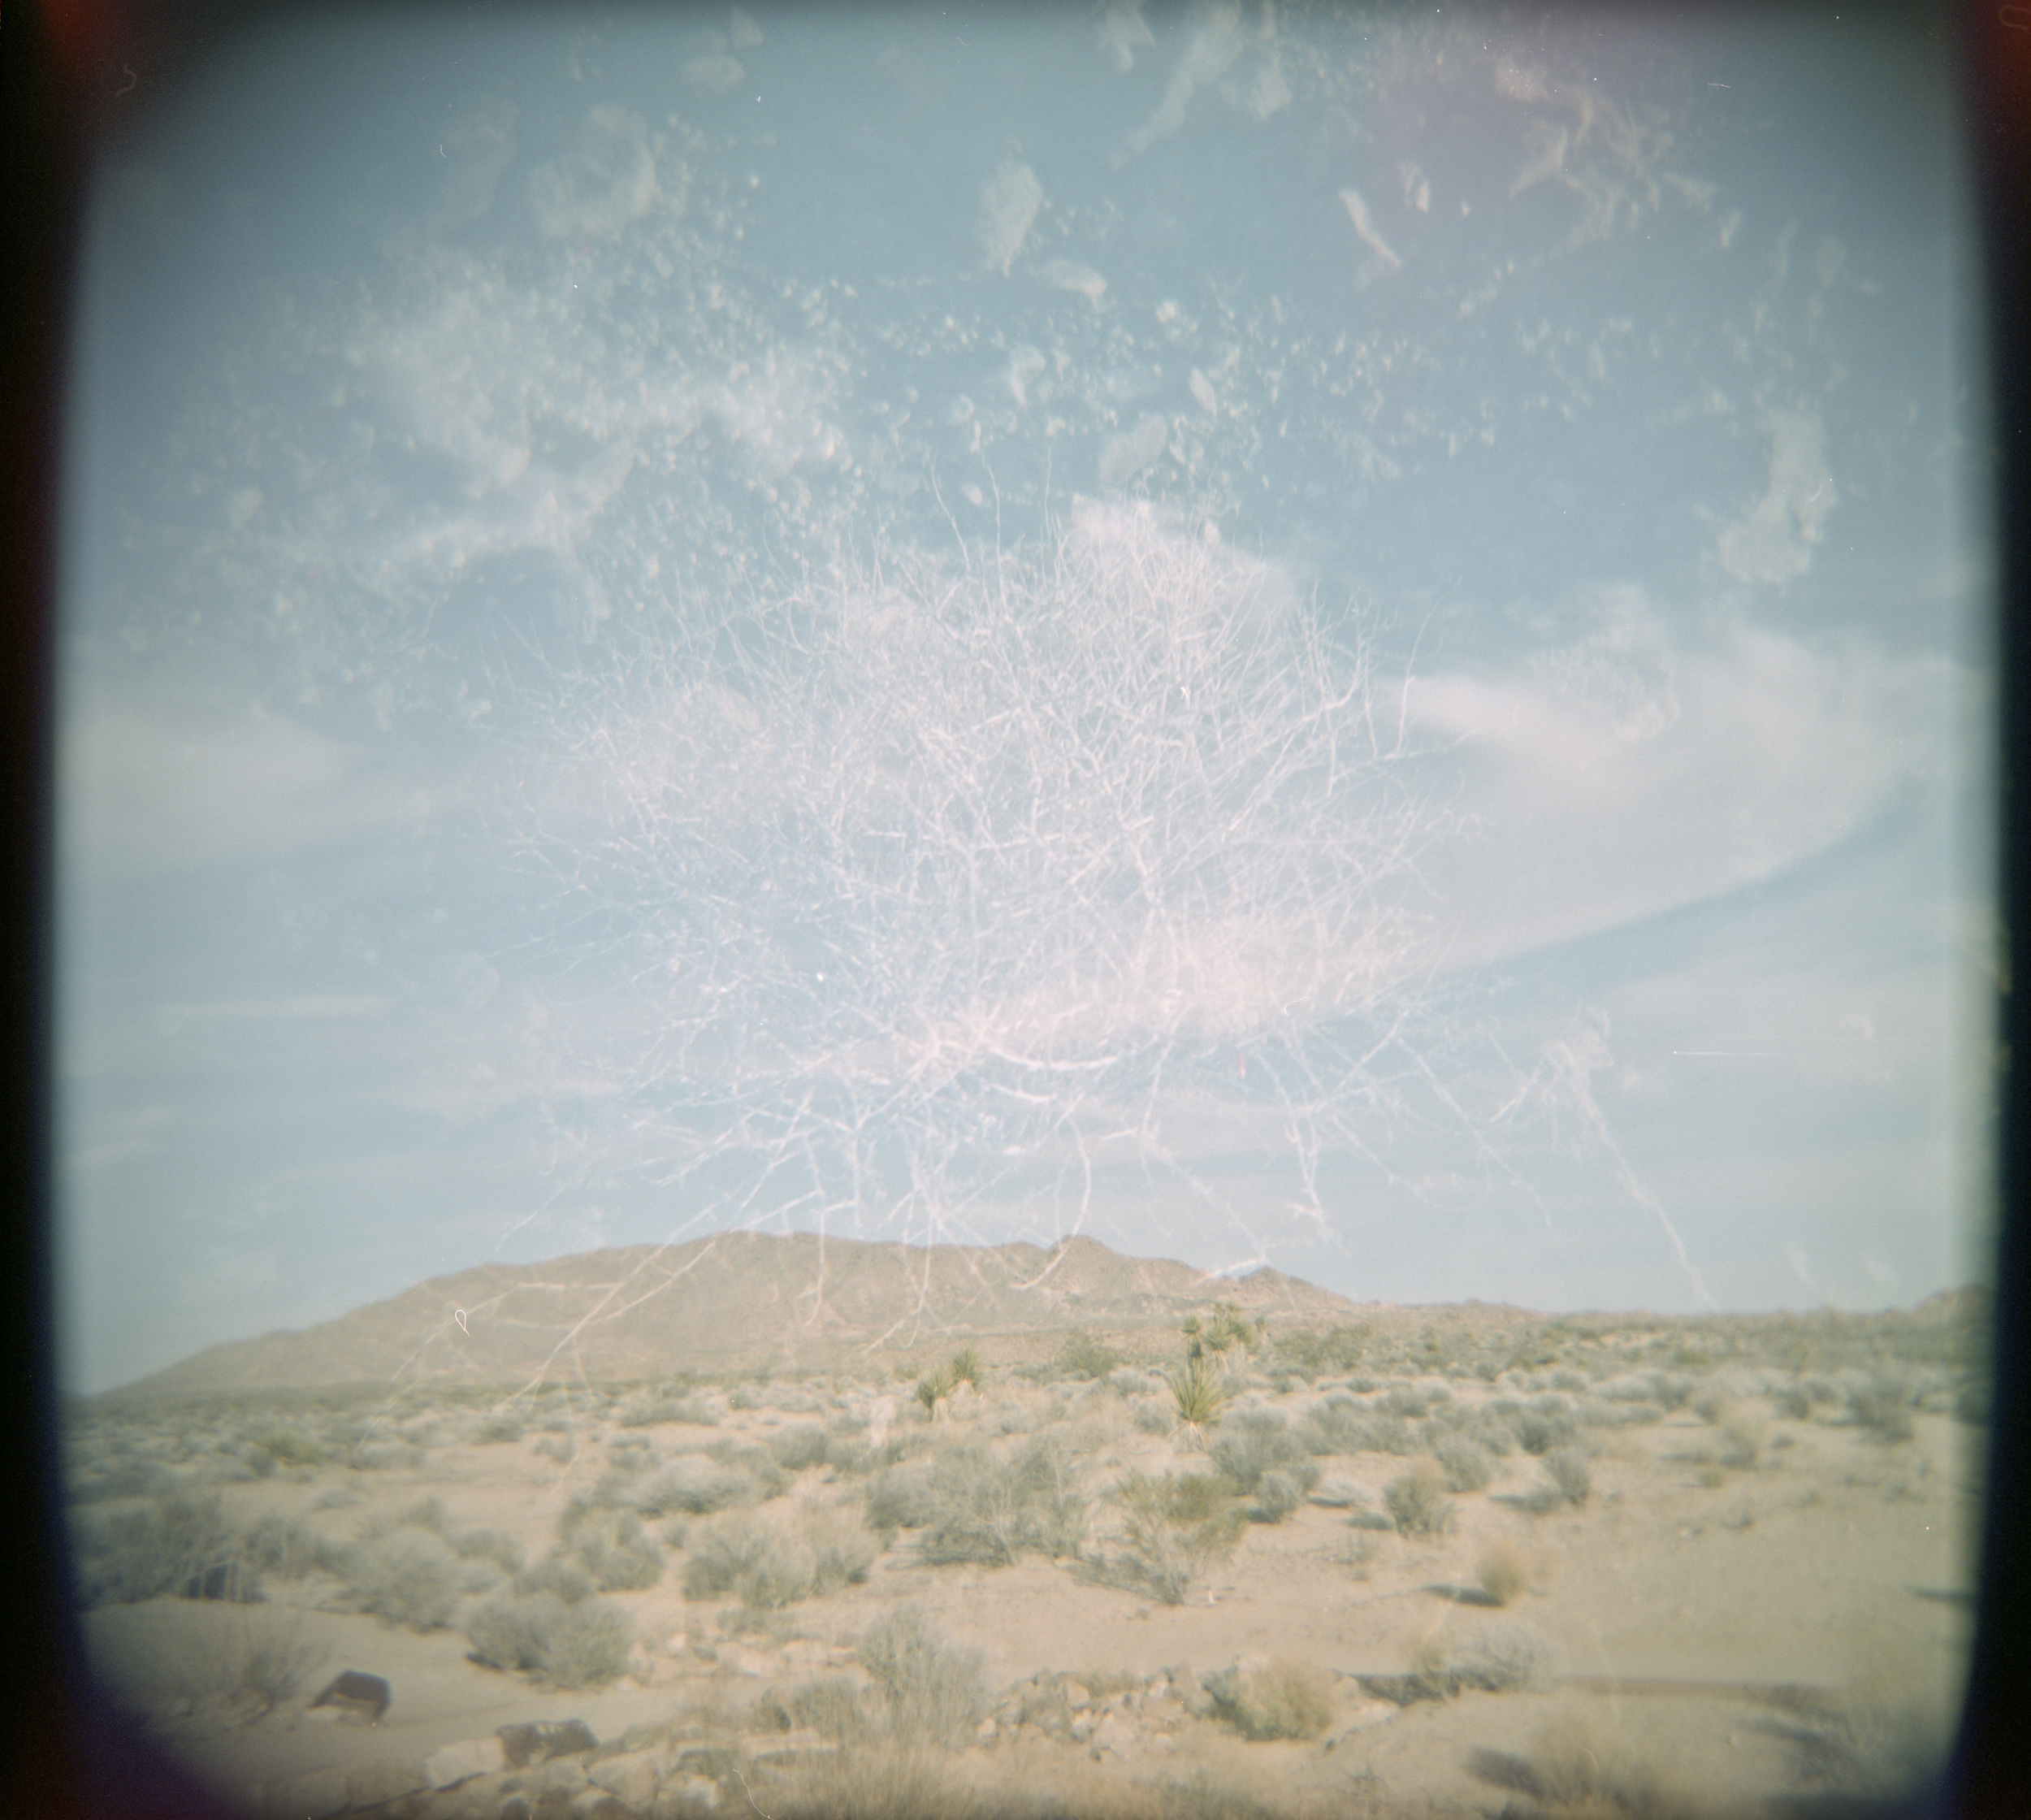 double exposure - holga - joshua tree - 2013